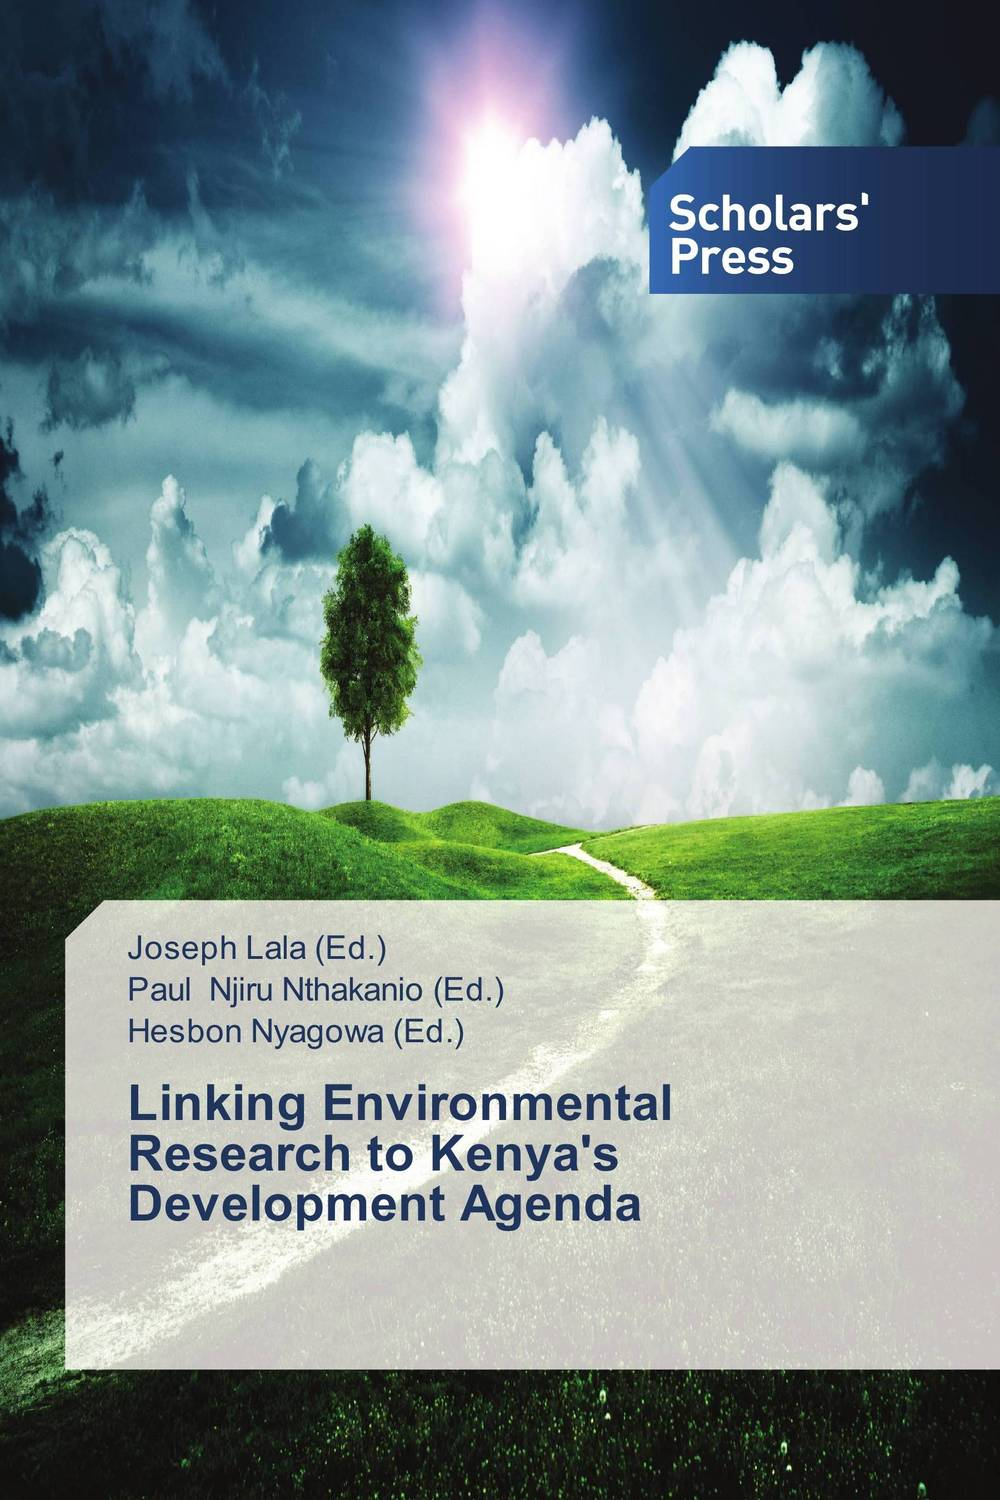 Linking Environmental Research to Kenya's Development Agenda буддийский сувенир sheng good research and development ssyf a19 10